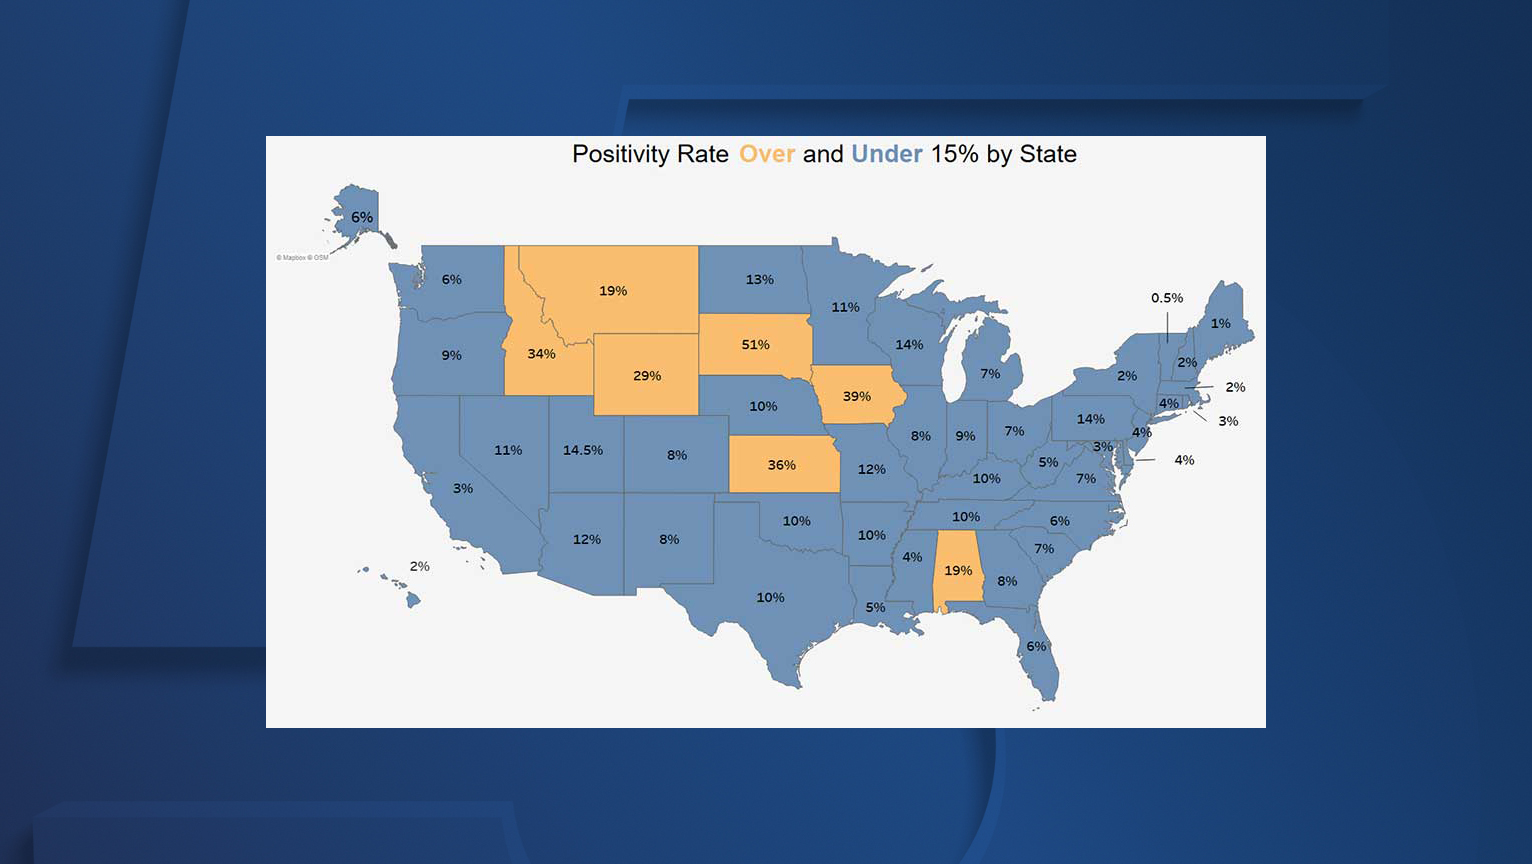 Nov 6 Ohio Department Of Health Releases Updated Travel Advisory Map With 7 States